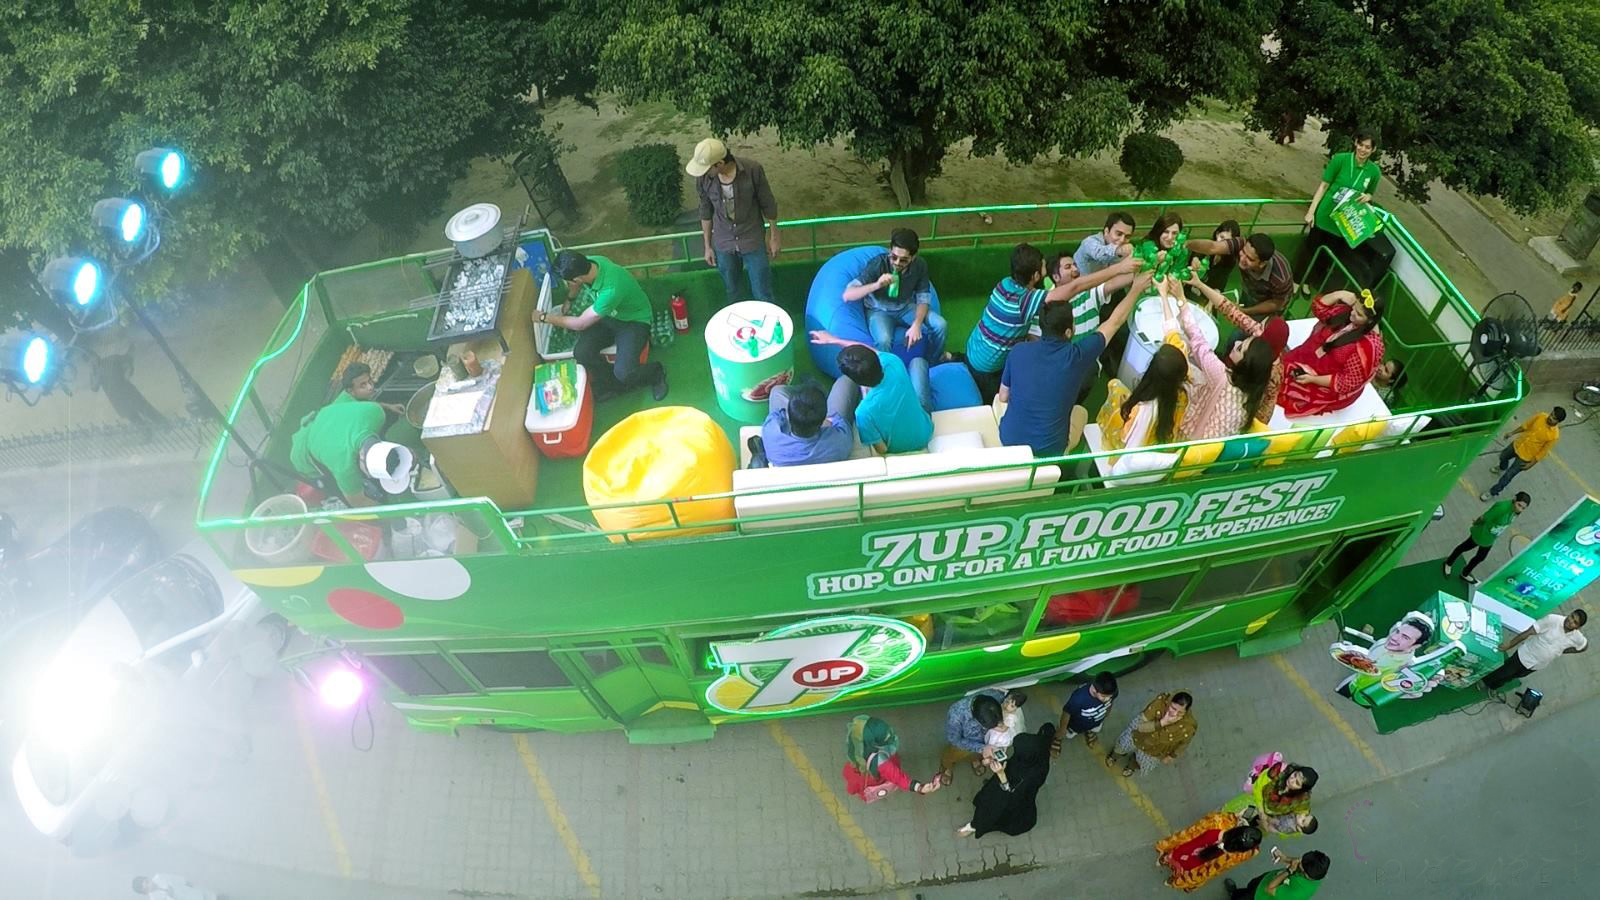 7UP Bus